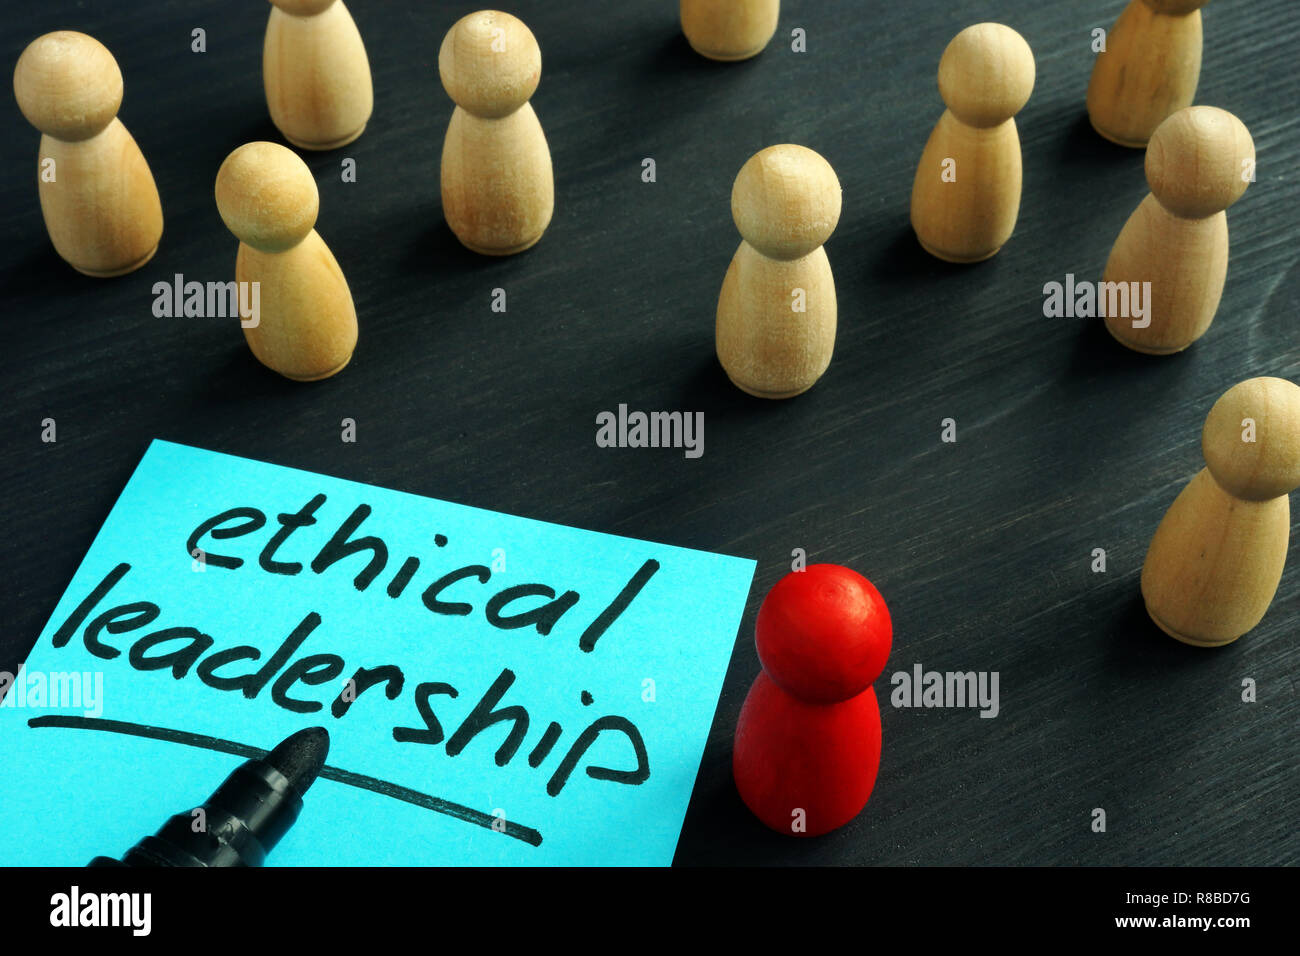 Ethical leadership. Wooden figures on a desk. - Stock Image